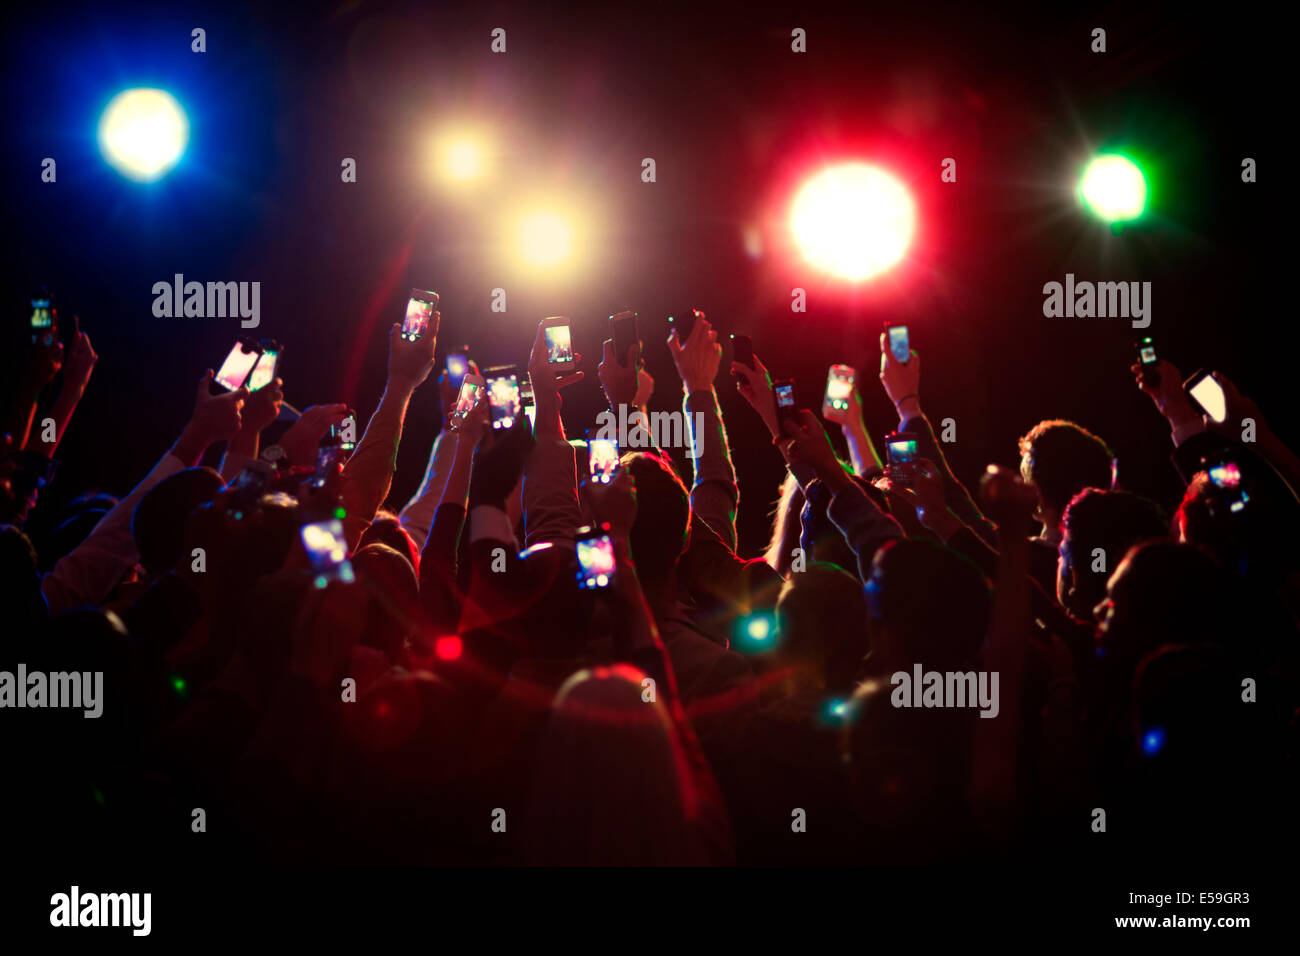 Audience using camera phones at concert Stock Photo